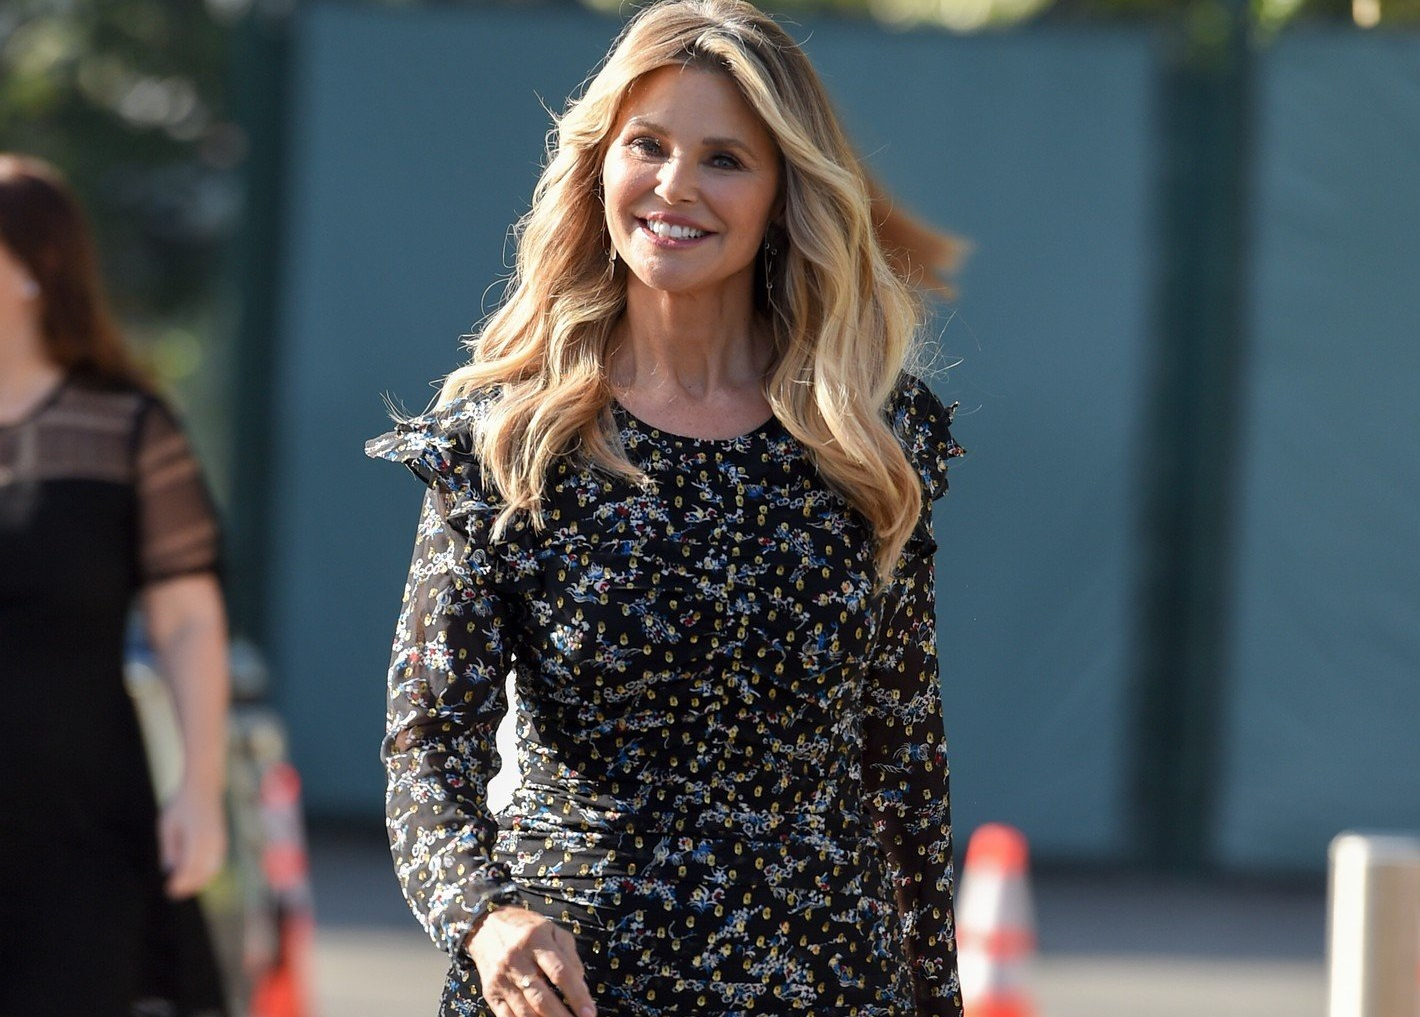 Christie Brinkley is seen Jan 18, 2018 Job: 180118PG1 Los Angeles, CA, Image: 360623237, License: Rights-managed, Restrictions: 000, Model Release: no, Credit line: Profimedia, Bauer Griffin